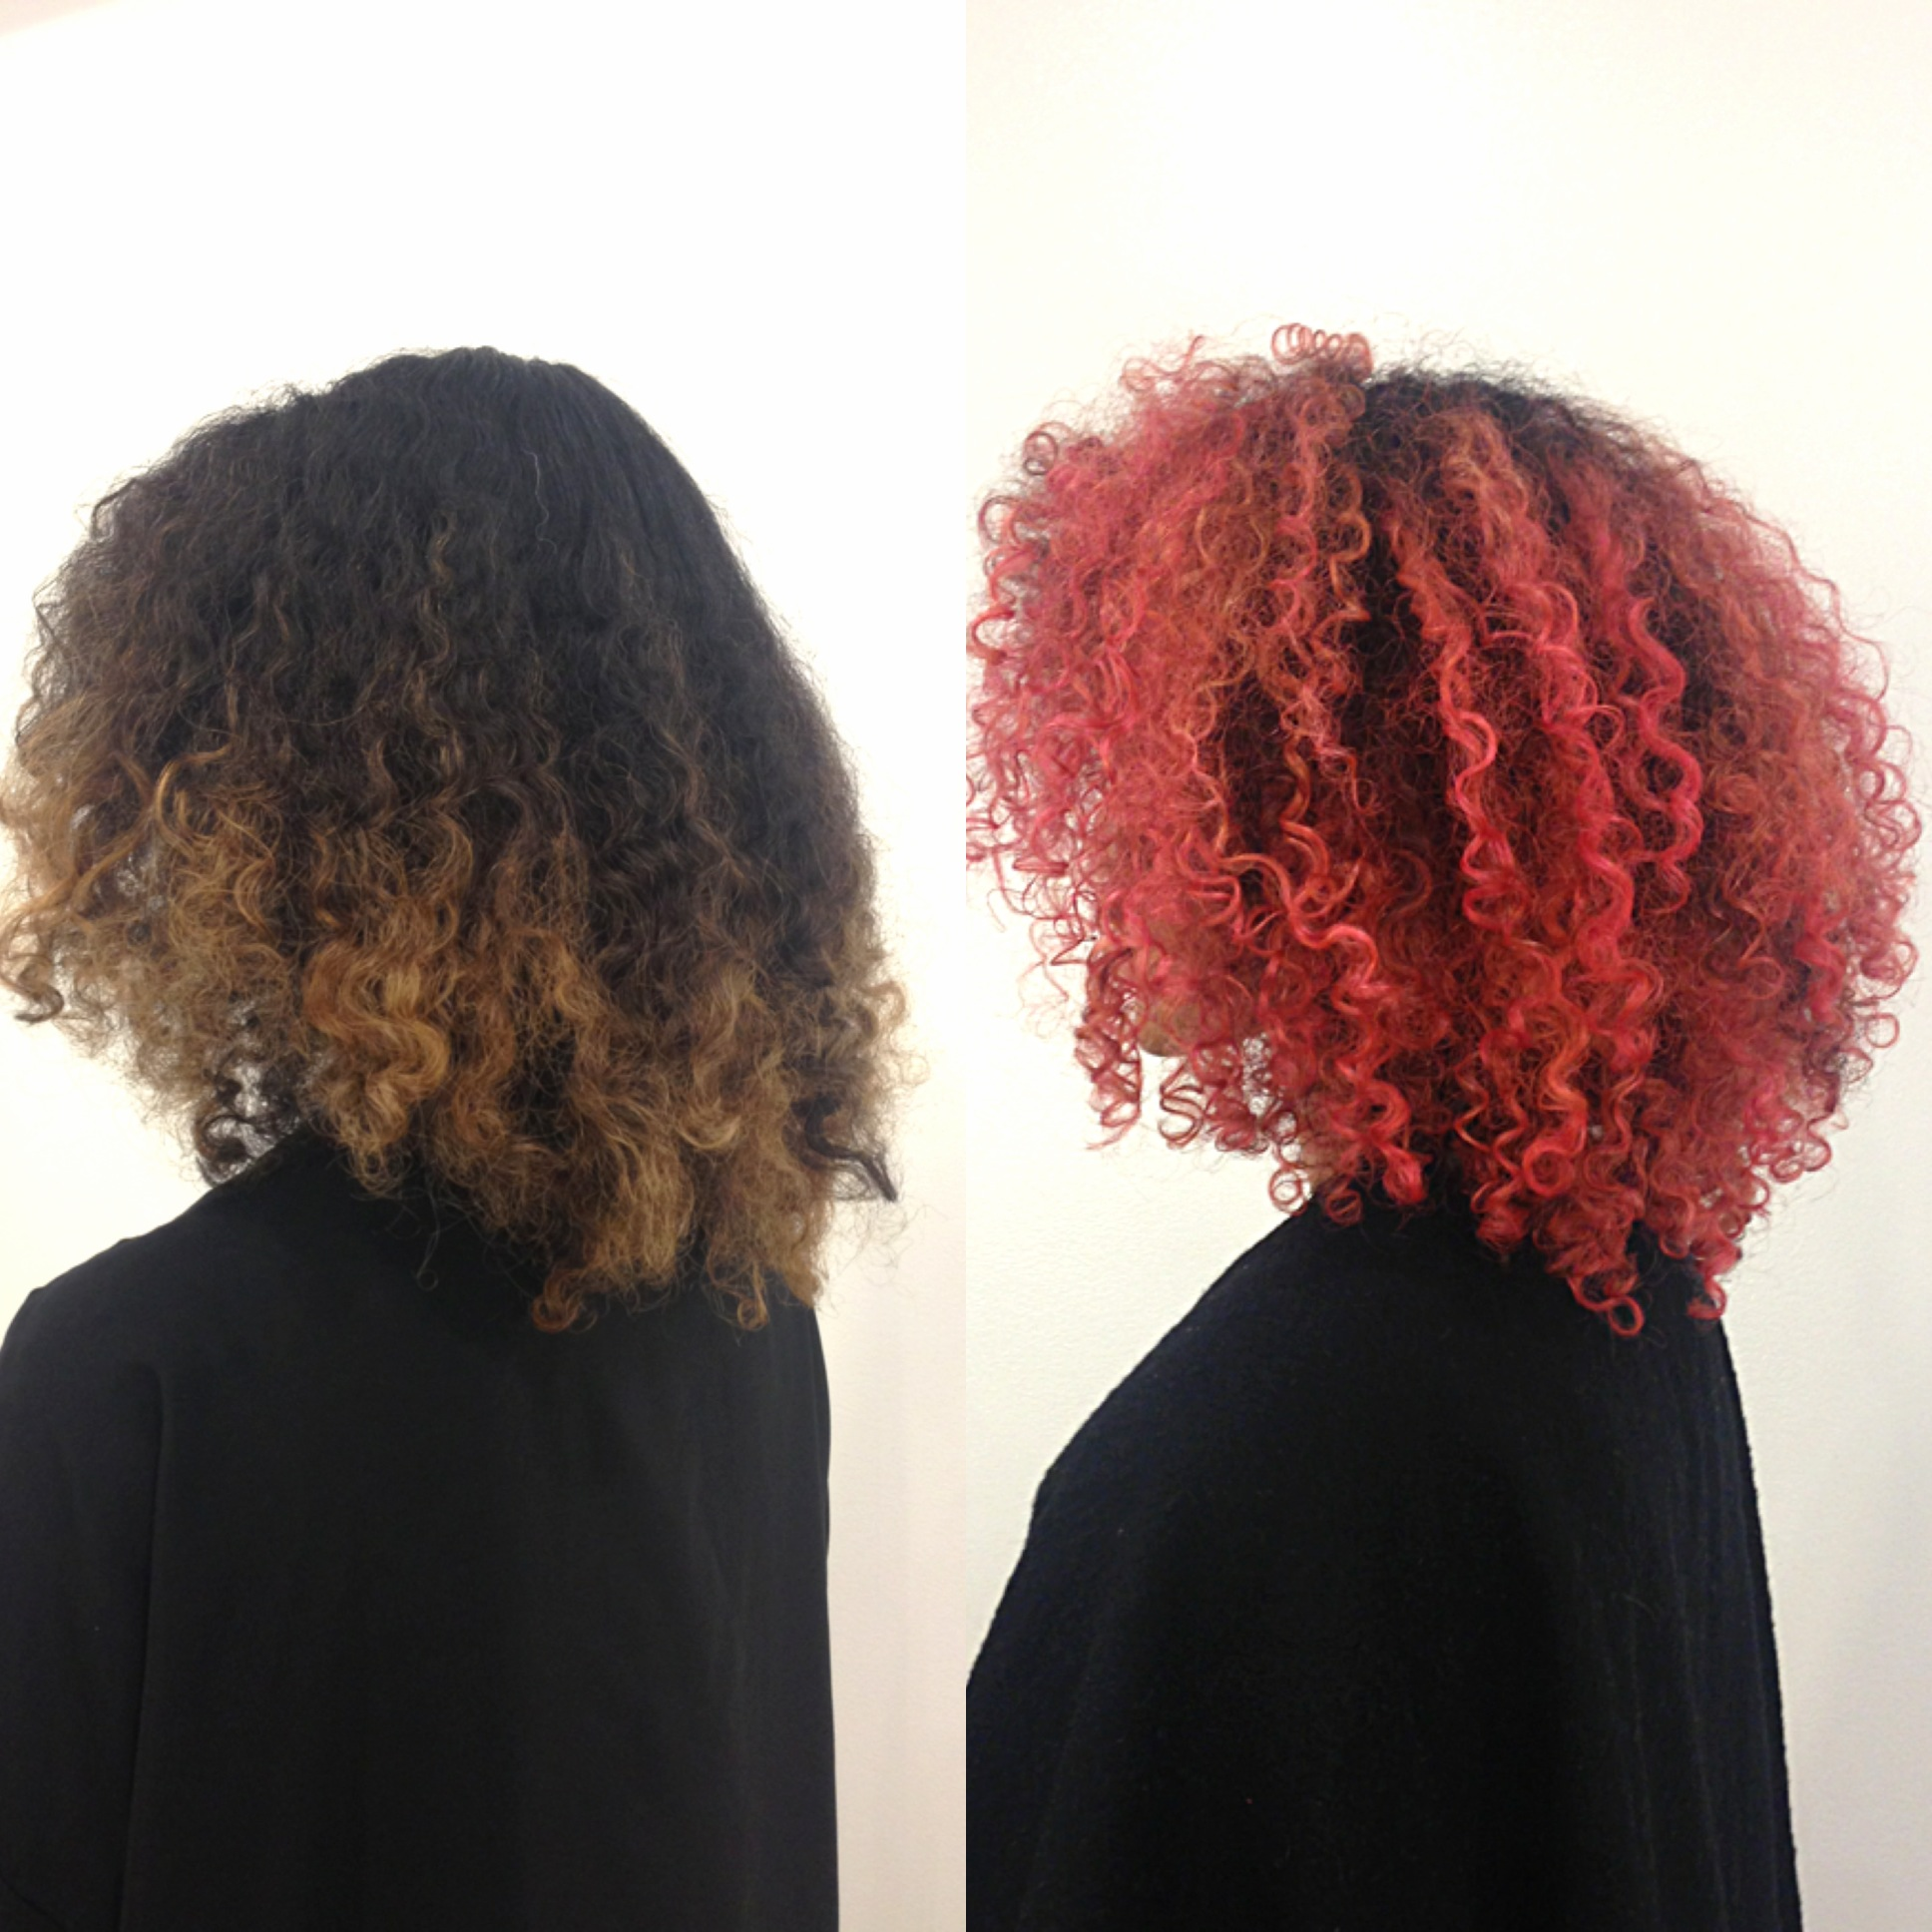 TRANSFORMATION: Pretty Red Curls